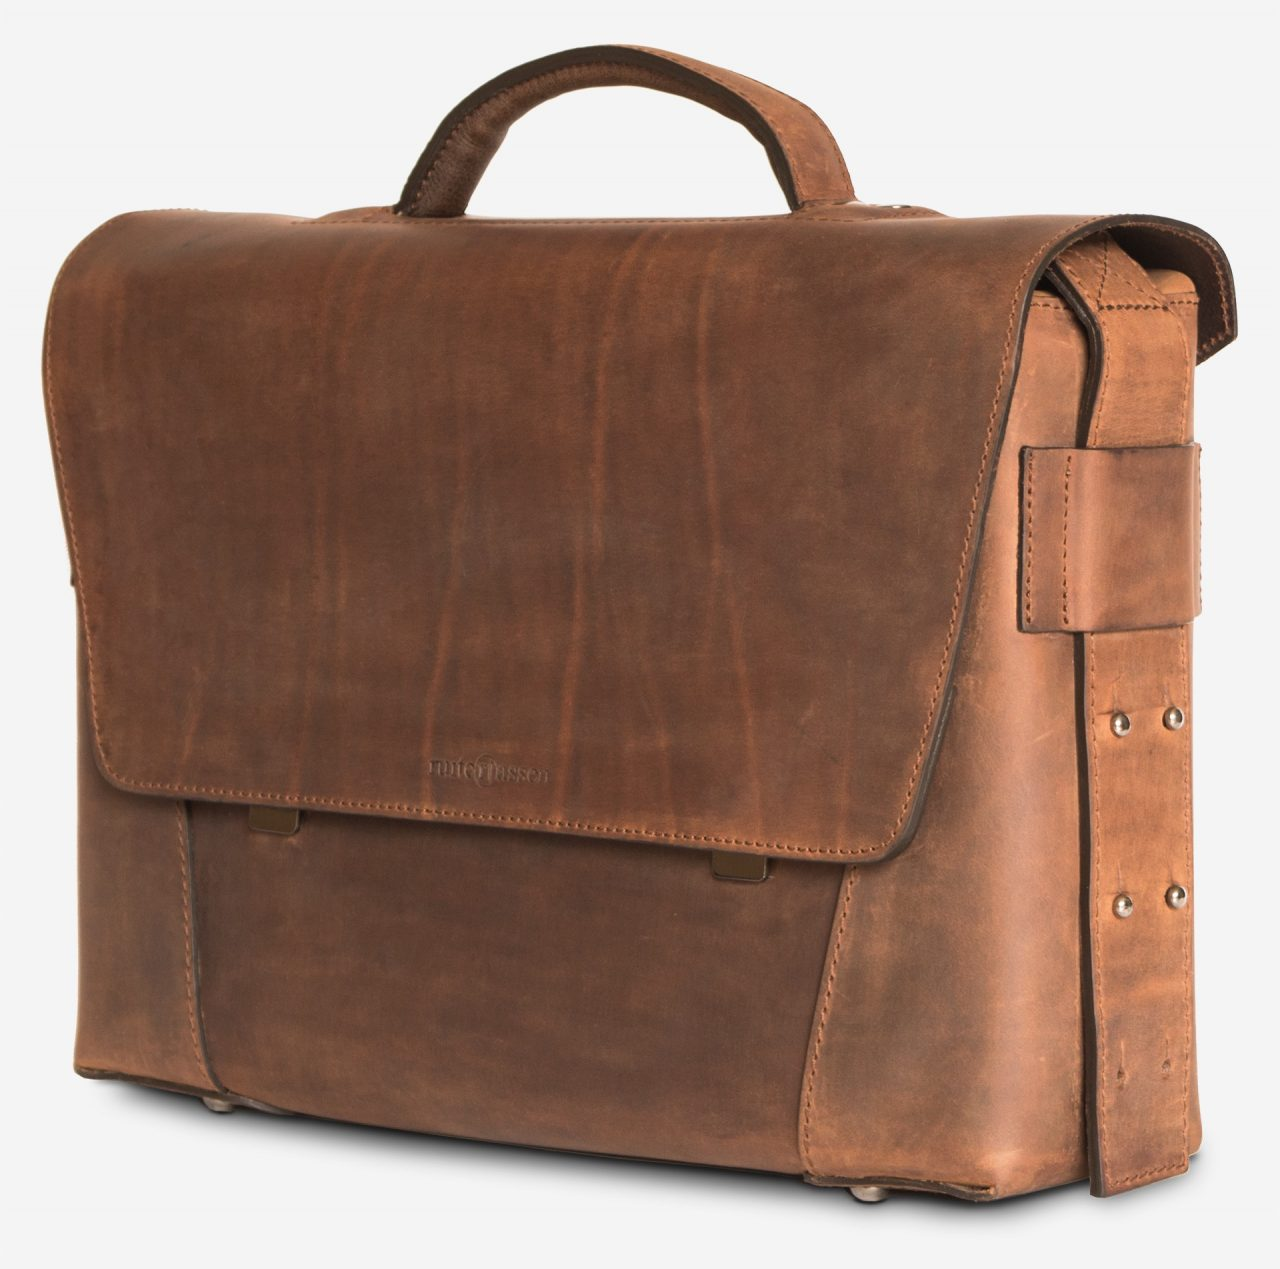 Side view of the vegetable-tanned brown leather briefcase bag with laptop pocket.